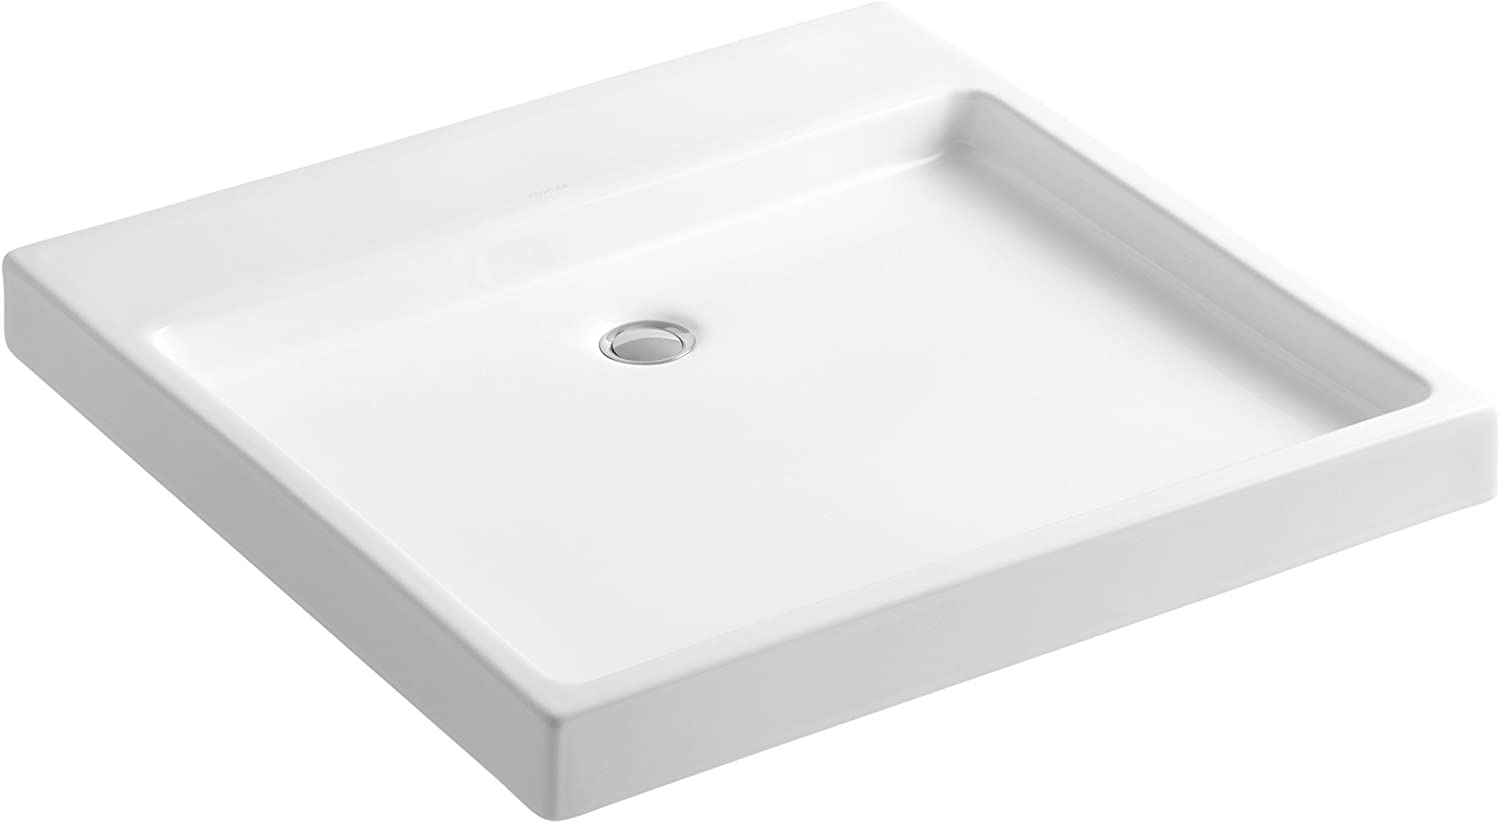 Purist Wading Pool Above-Counter Wall-Mount Bathroom Sink Finish White